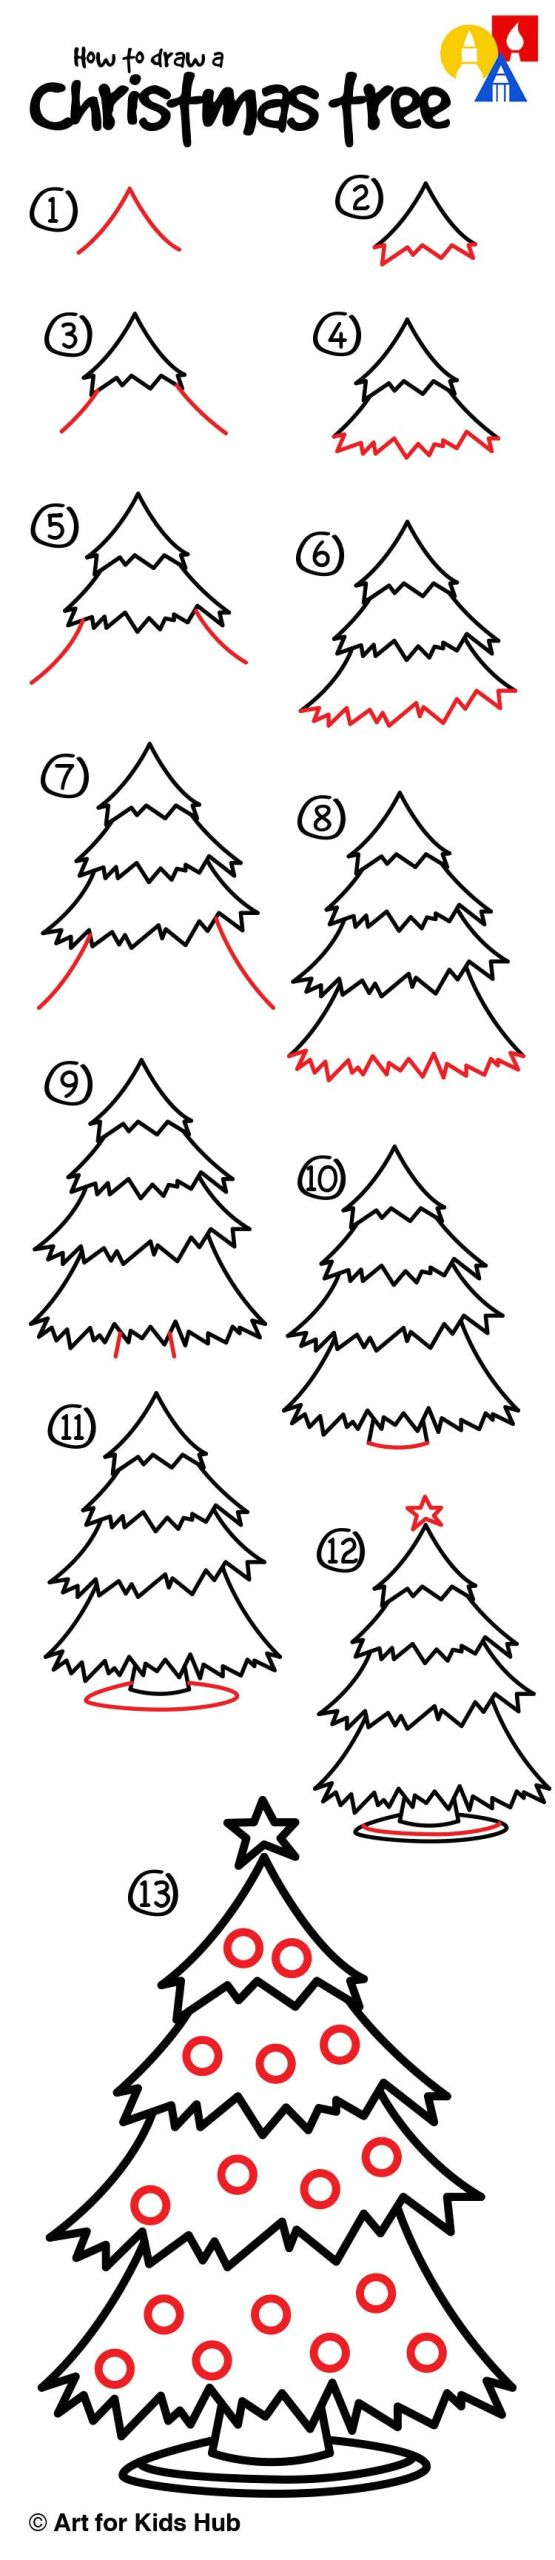 Easy Things to Draw for Christmas How to Draw A Christmas Tree Art for Kids Hub Art for